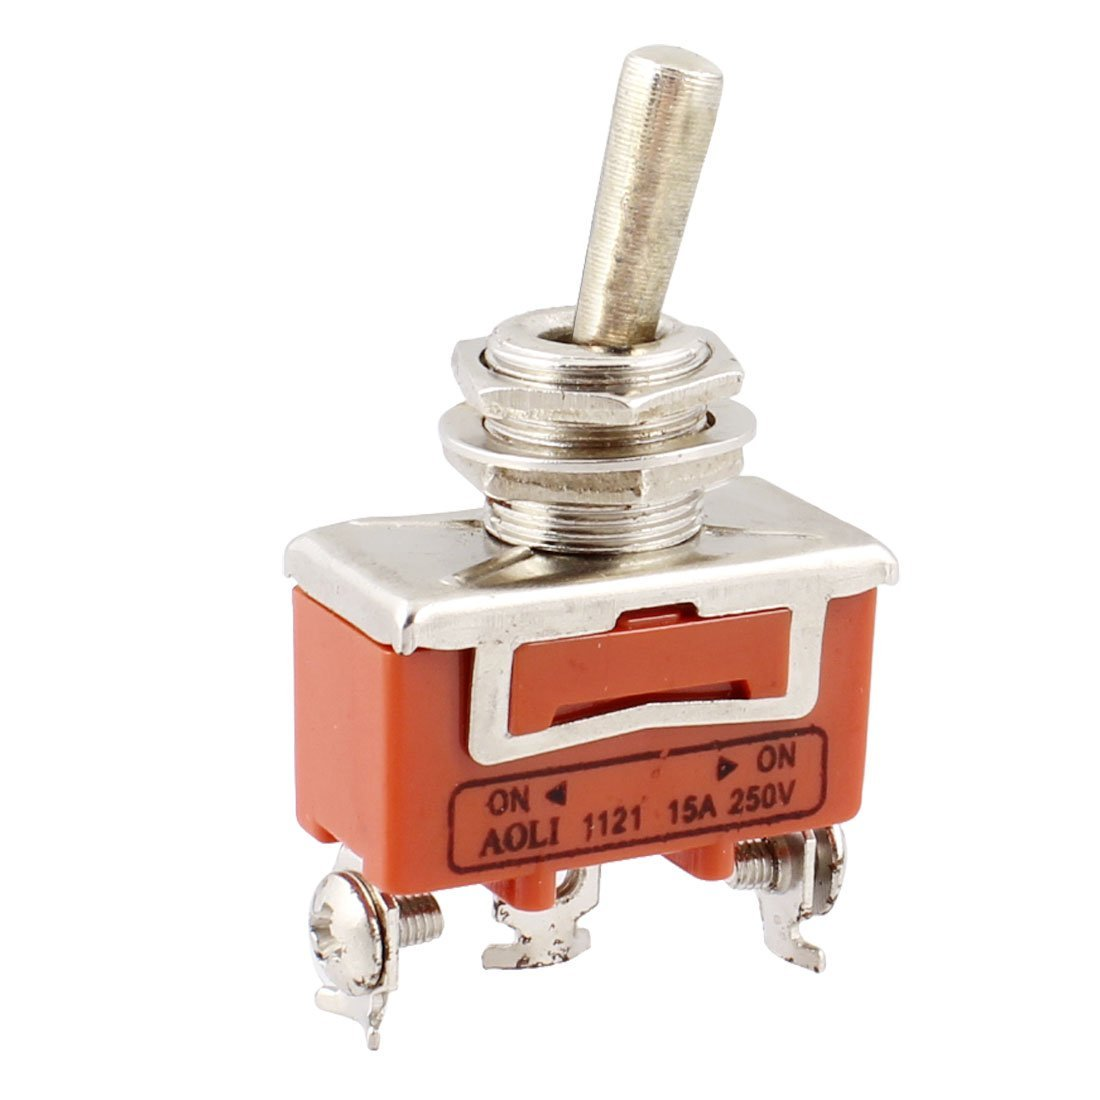 Ac 250v 15a On 2 Way Spdt Screw Terminals Toggle Switch A9e1 Positions Product Name Rated Voltage And Current Waterproof Rubber Boot Position Type Interlocking